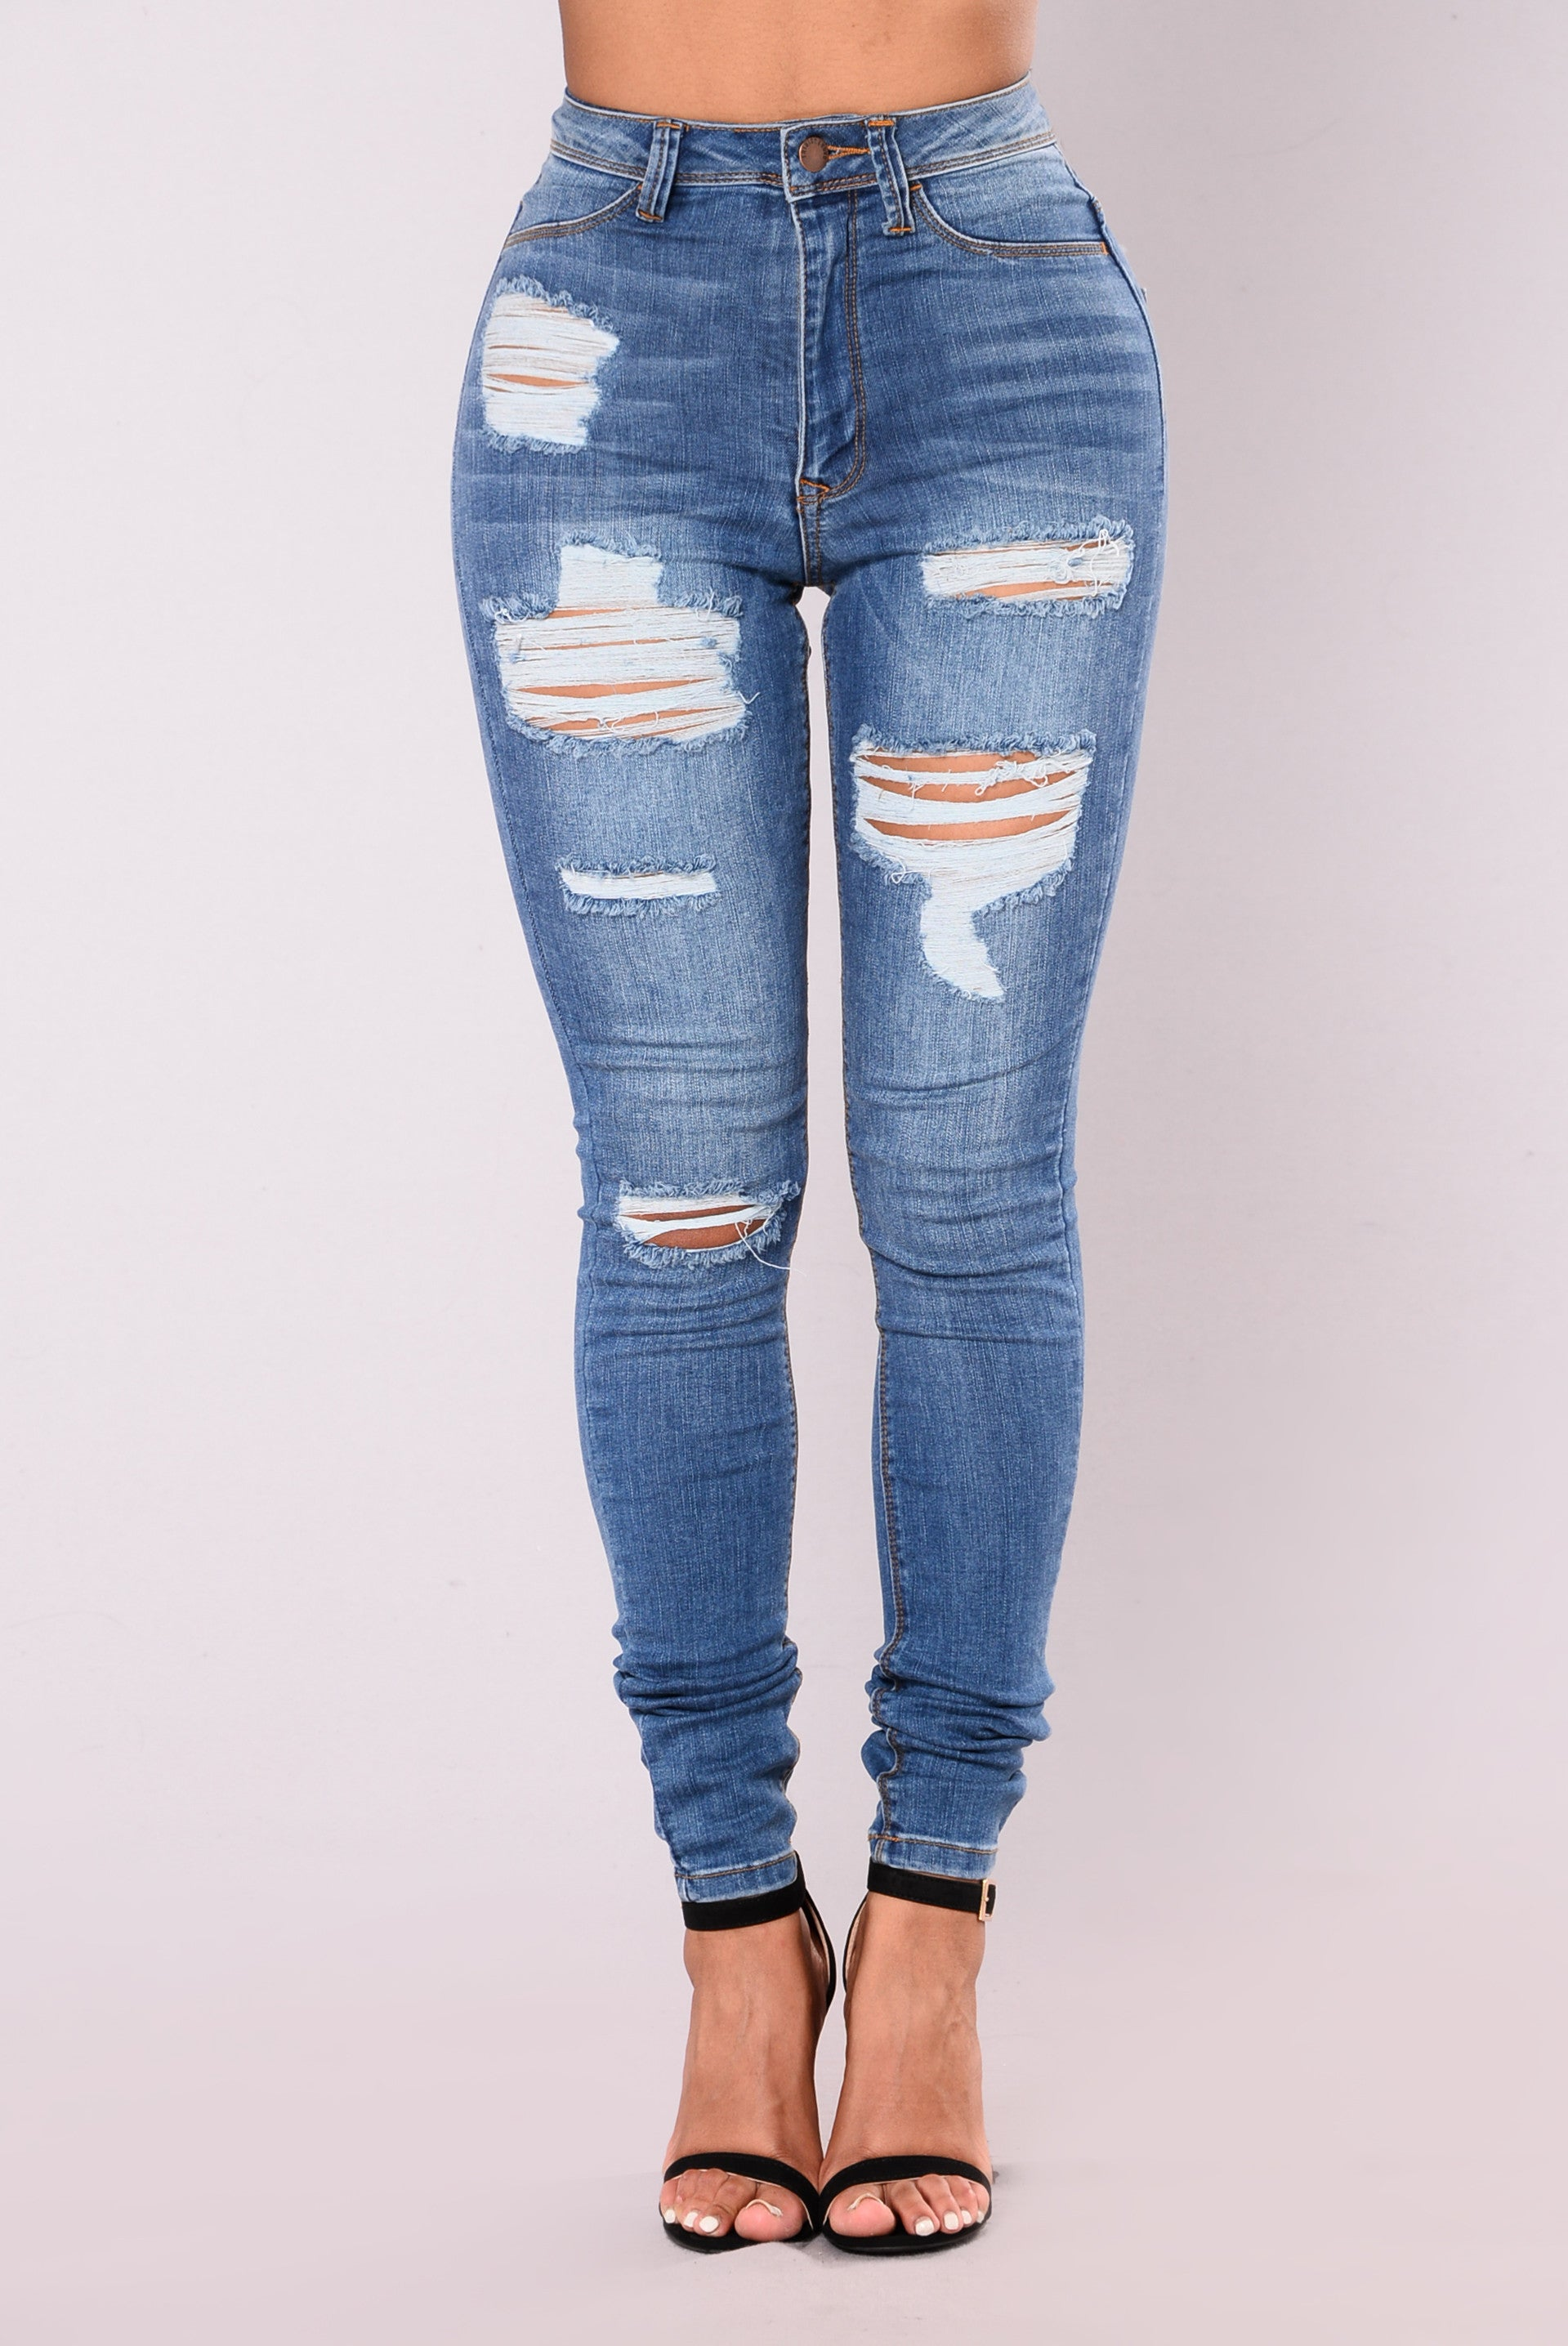 SHOP CLEARANCE JEANS BY SIZE